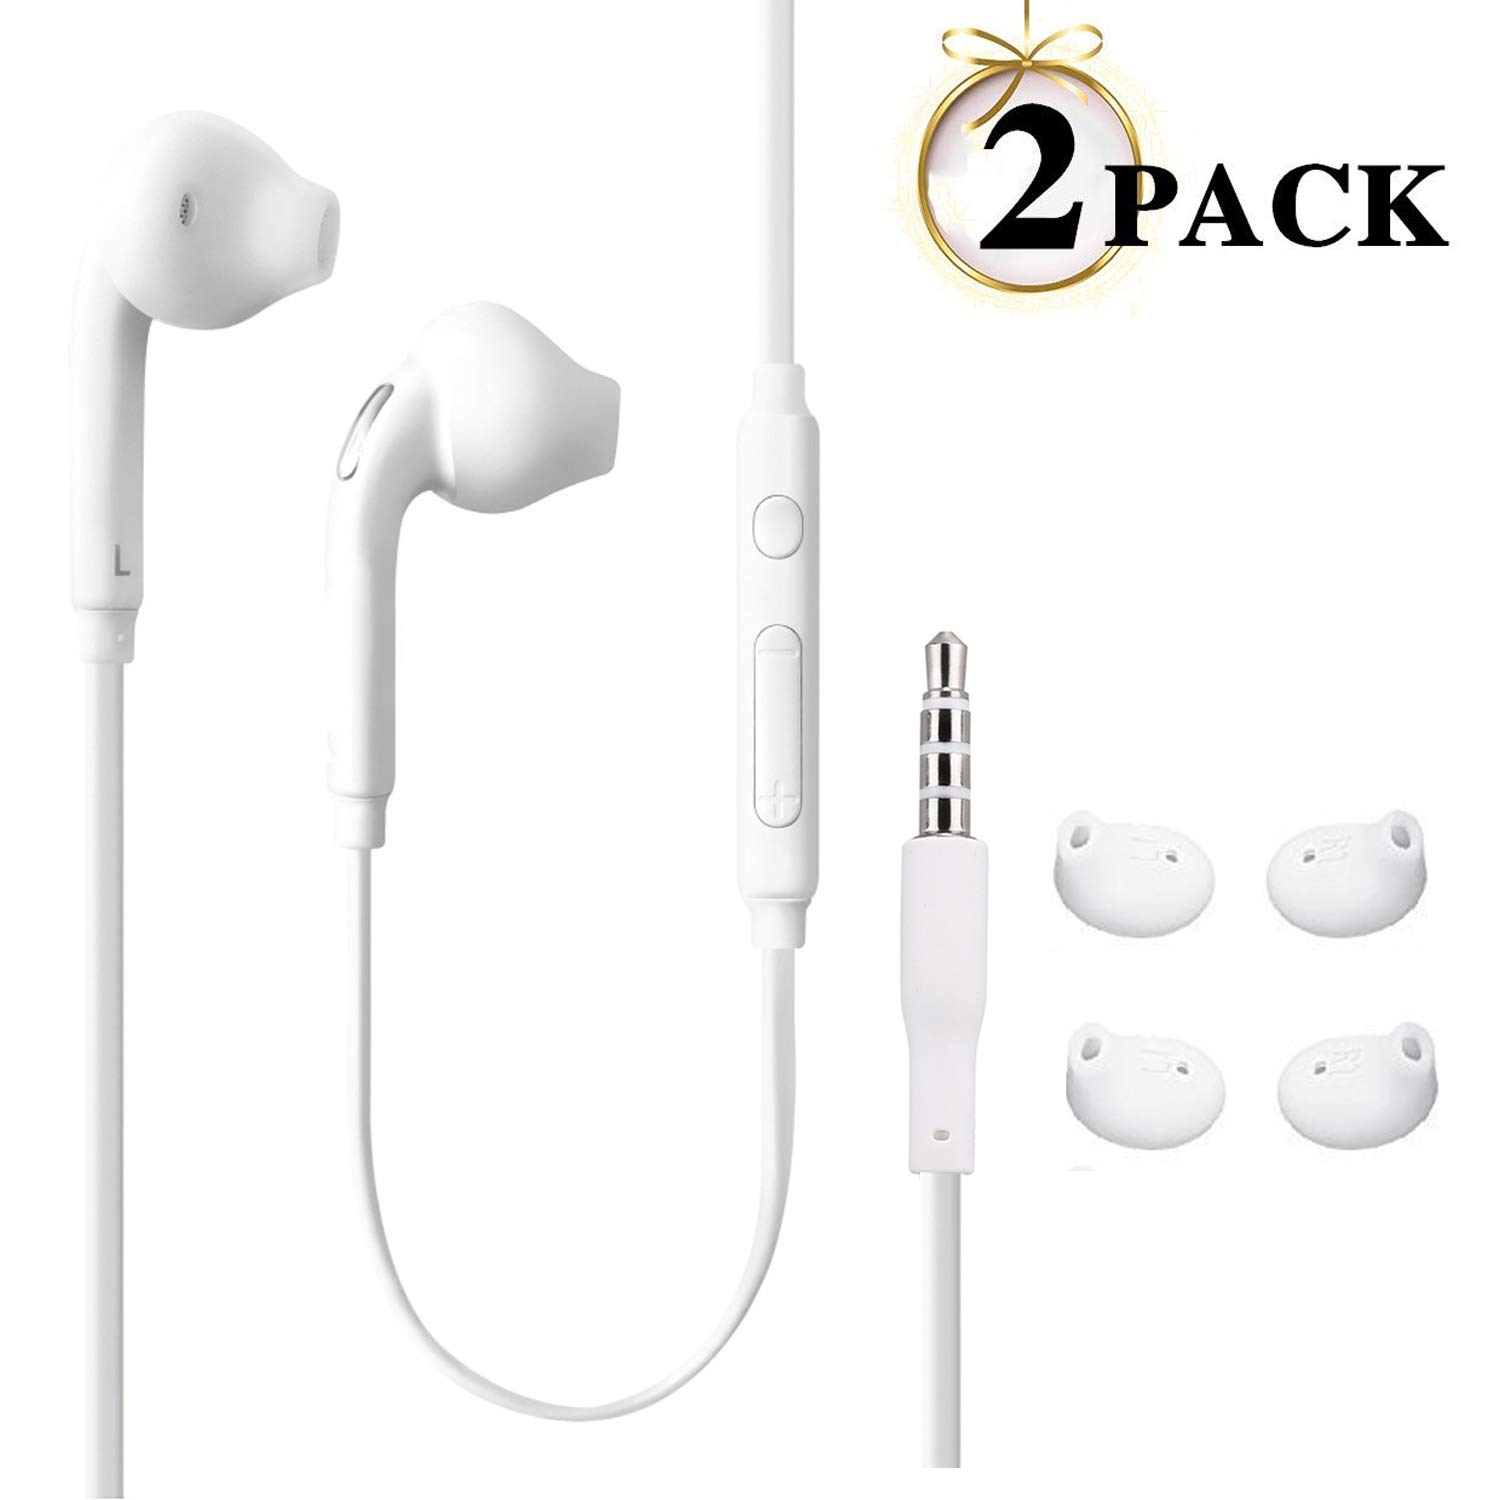 JUNAHAA 3.5mm Earphones Earbuds Headphones Stereo Mic Remote Control Compatible All Samsung Galaxy S6 Edge S6 Note 8 Note 9 S8 S8 S9 S9 Compatible iPhone 6 6plus 6S 6S Plus 5S 5c 2Pack